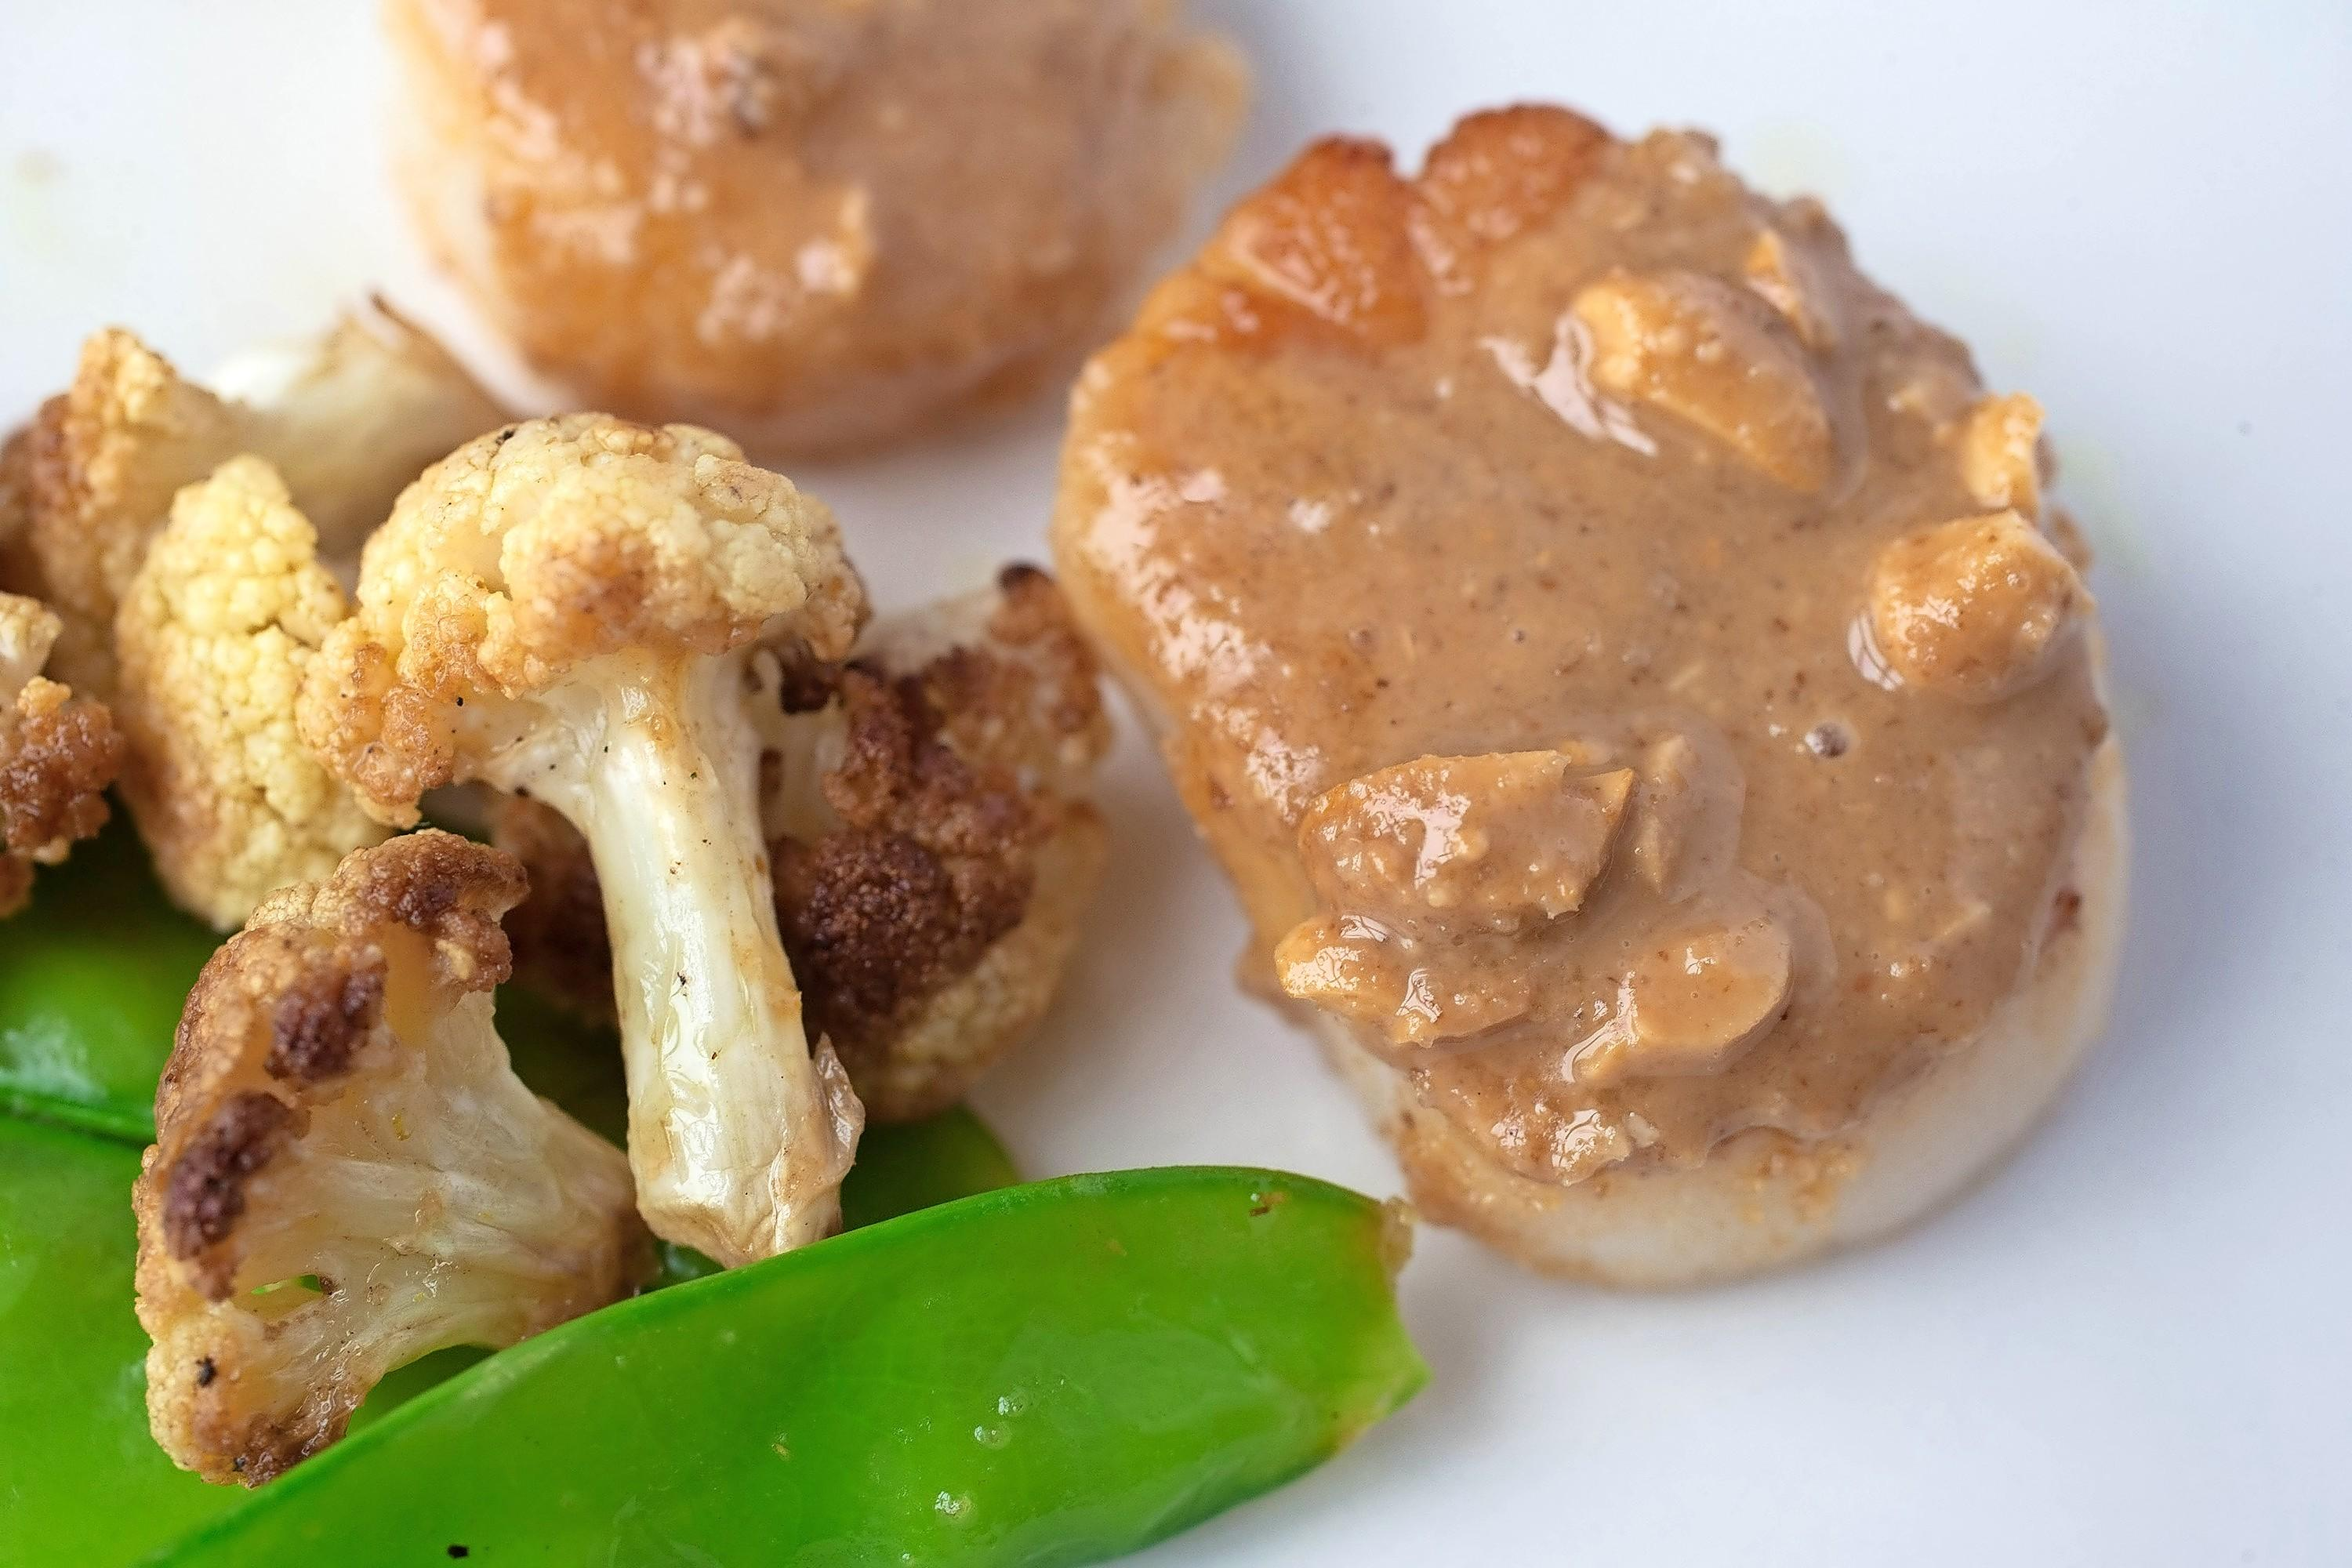 Austin Steele/St. Louis Post-Dispatch/TNS Scallops with snow peas, cauliflower and peanut panade